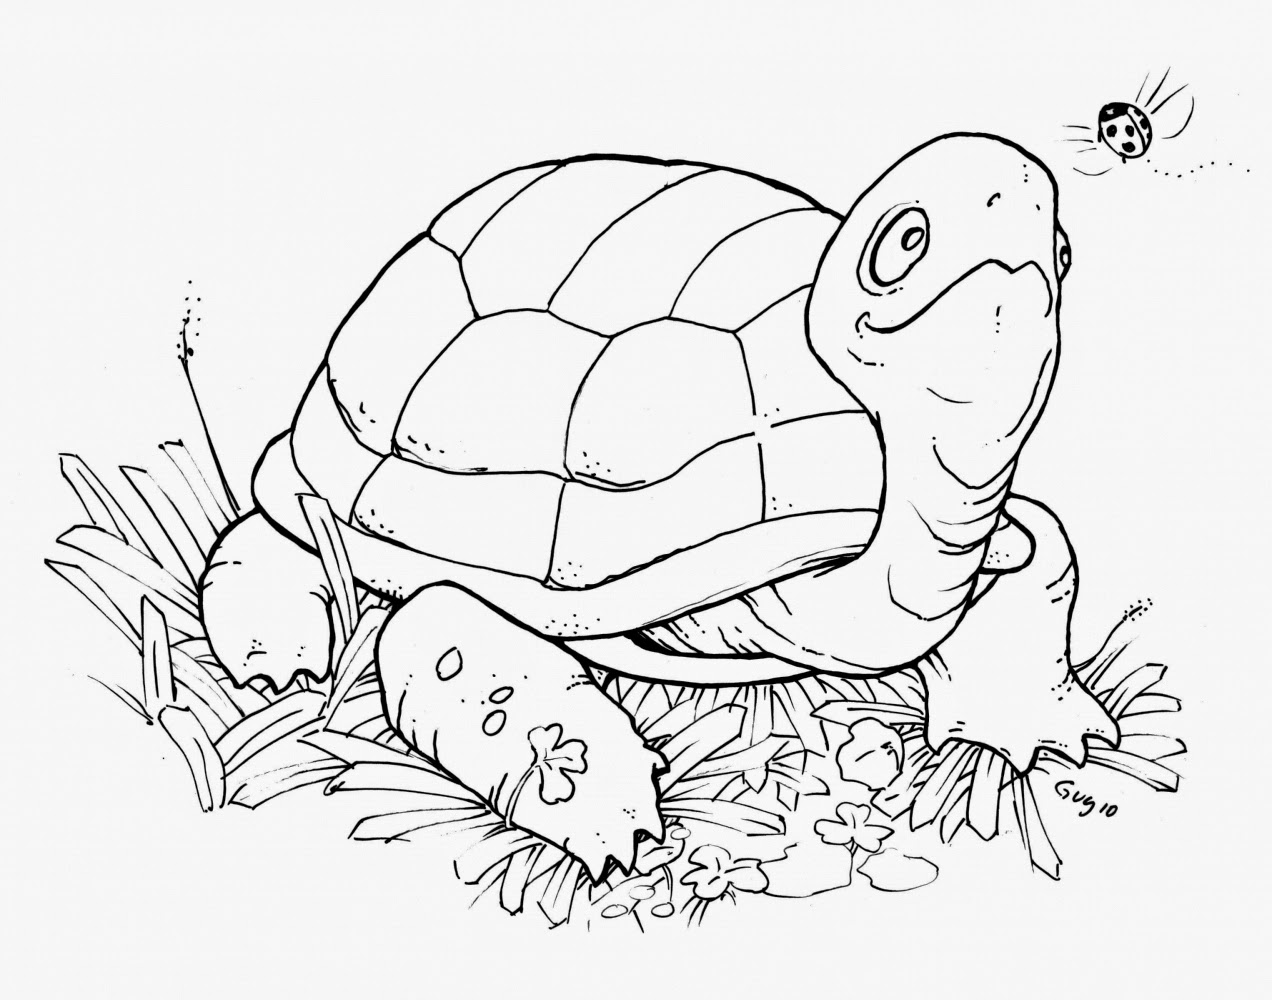 free turtle coloring pages | Coloring Pages: Turtles Free Printable Coloring Pages